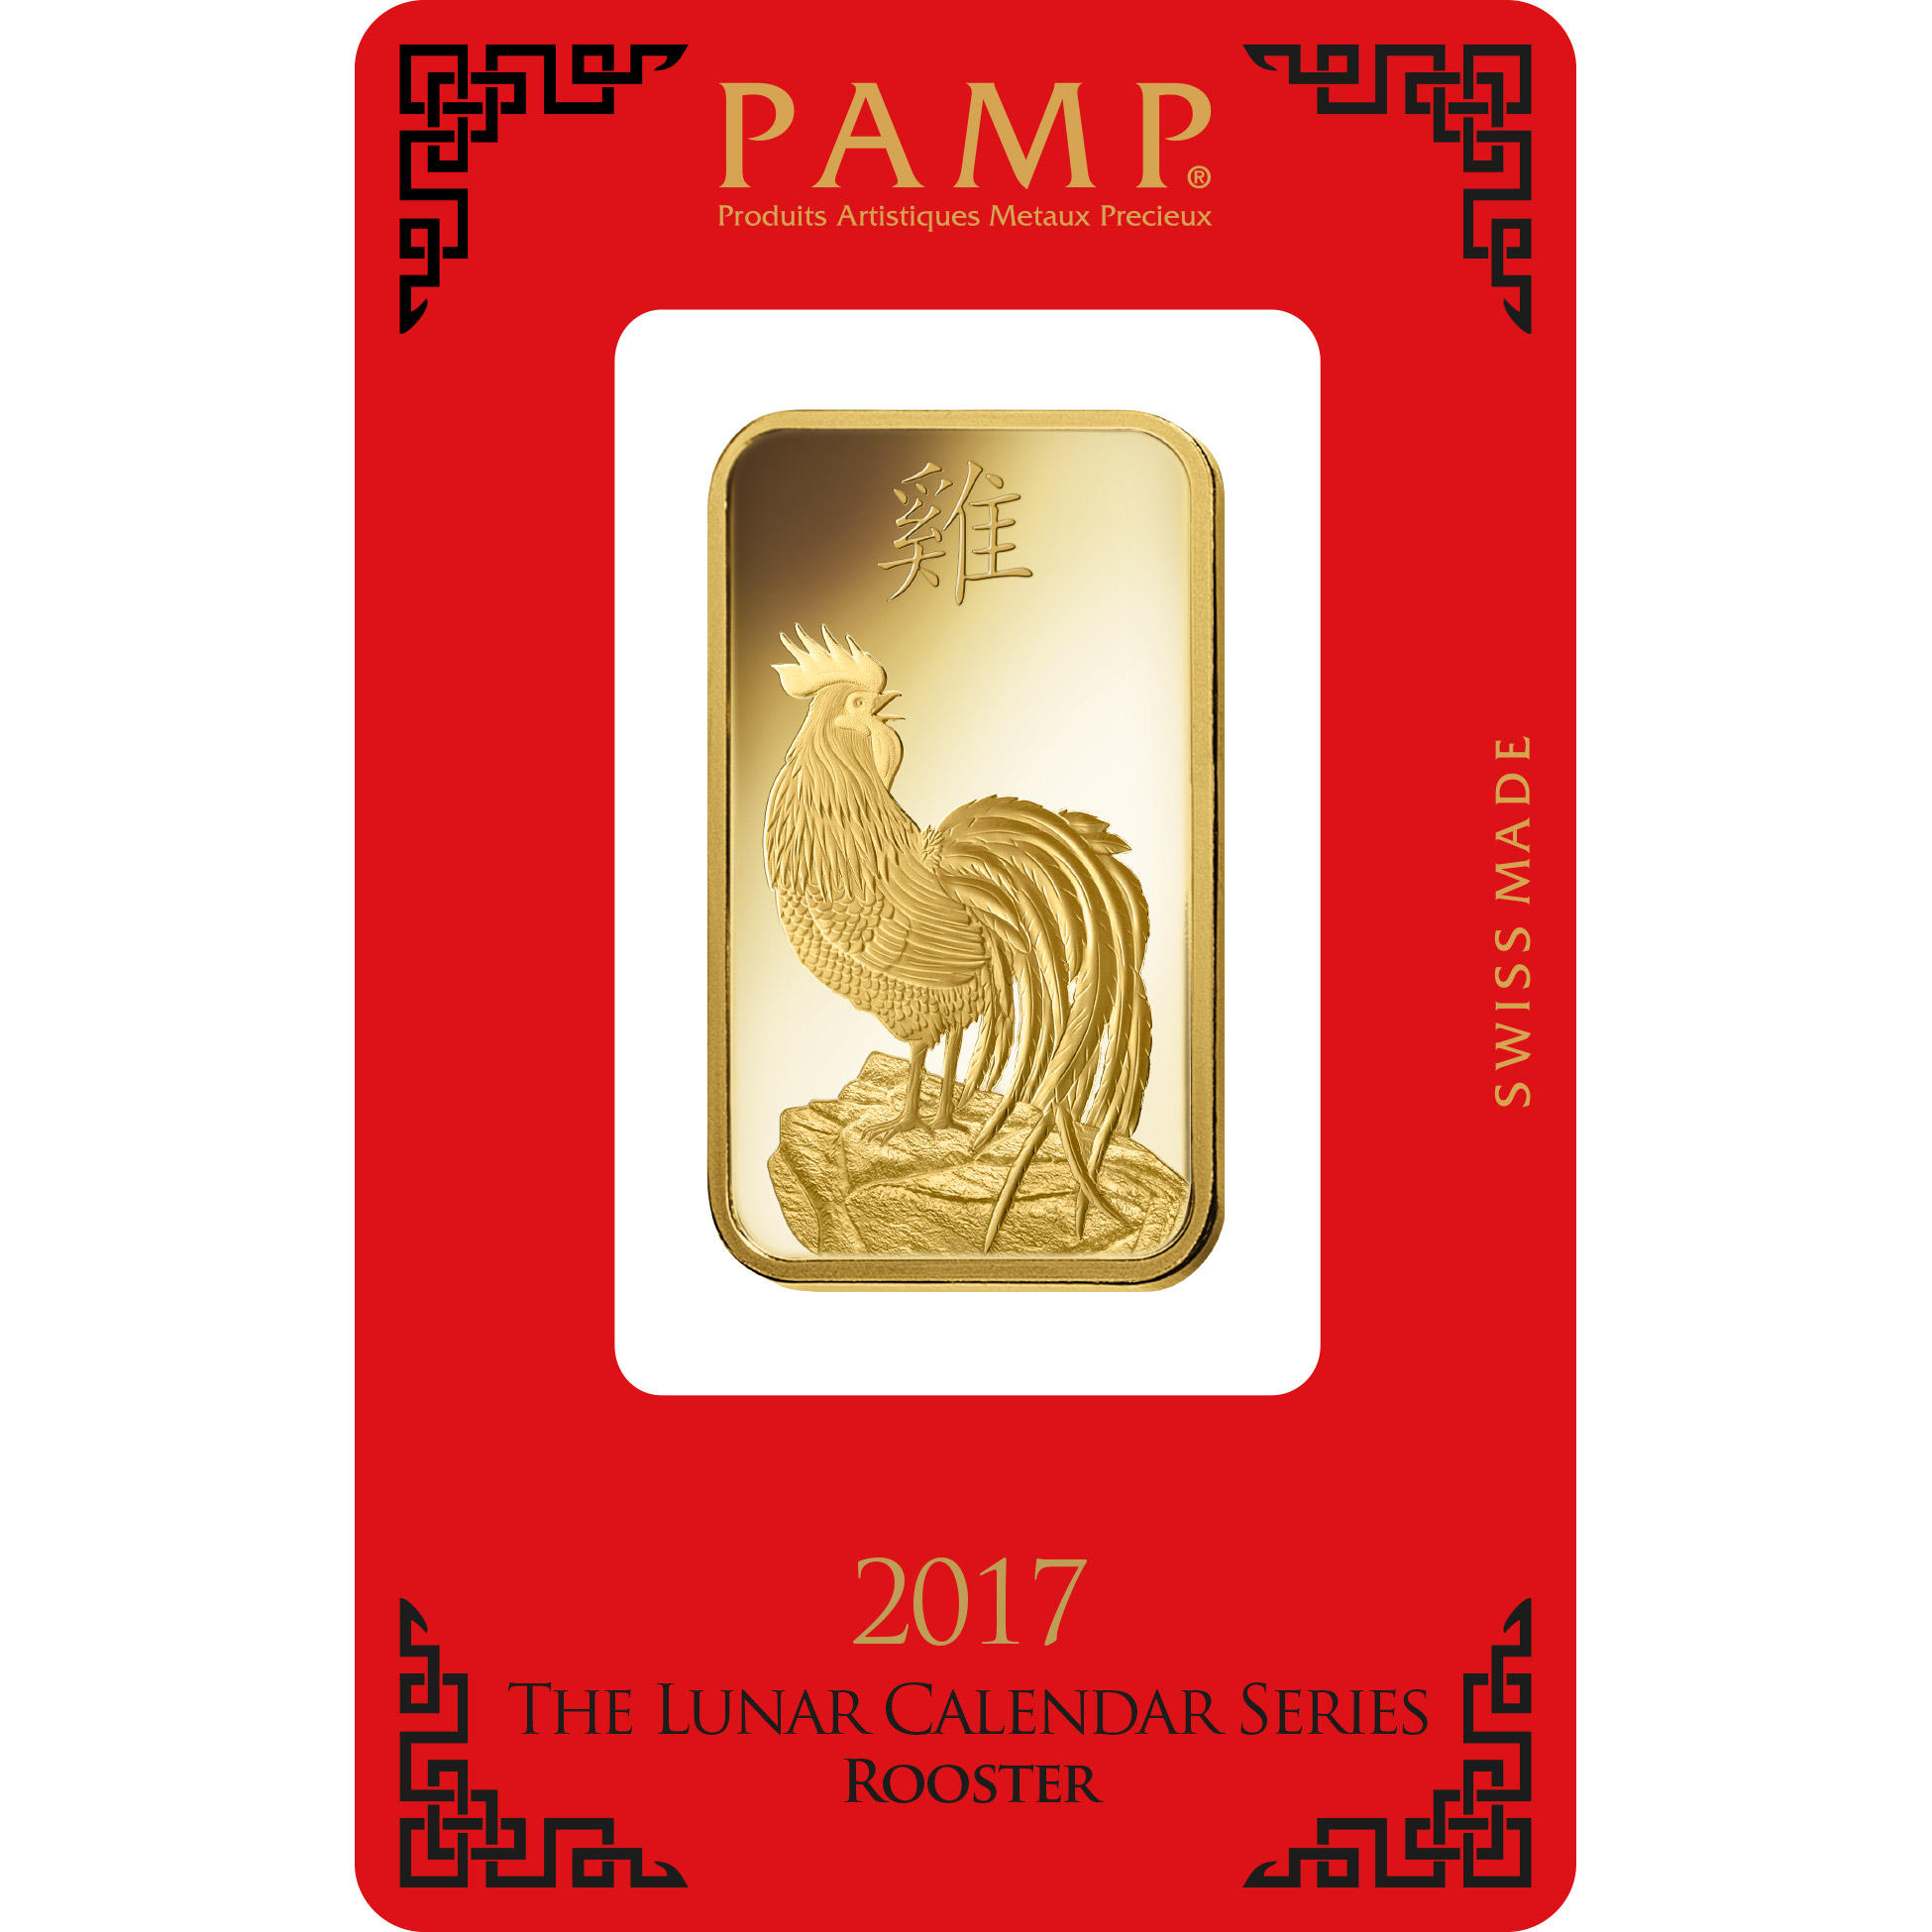 2packaging au 1oz lunarrooster certipamp rev